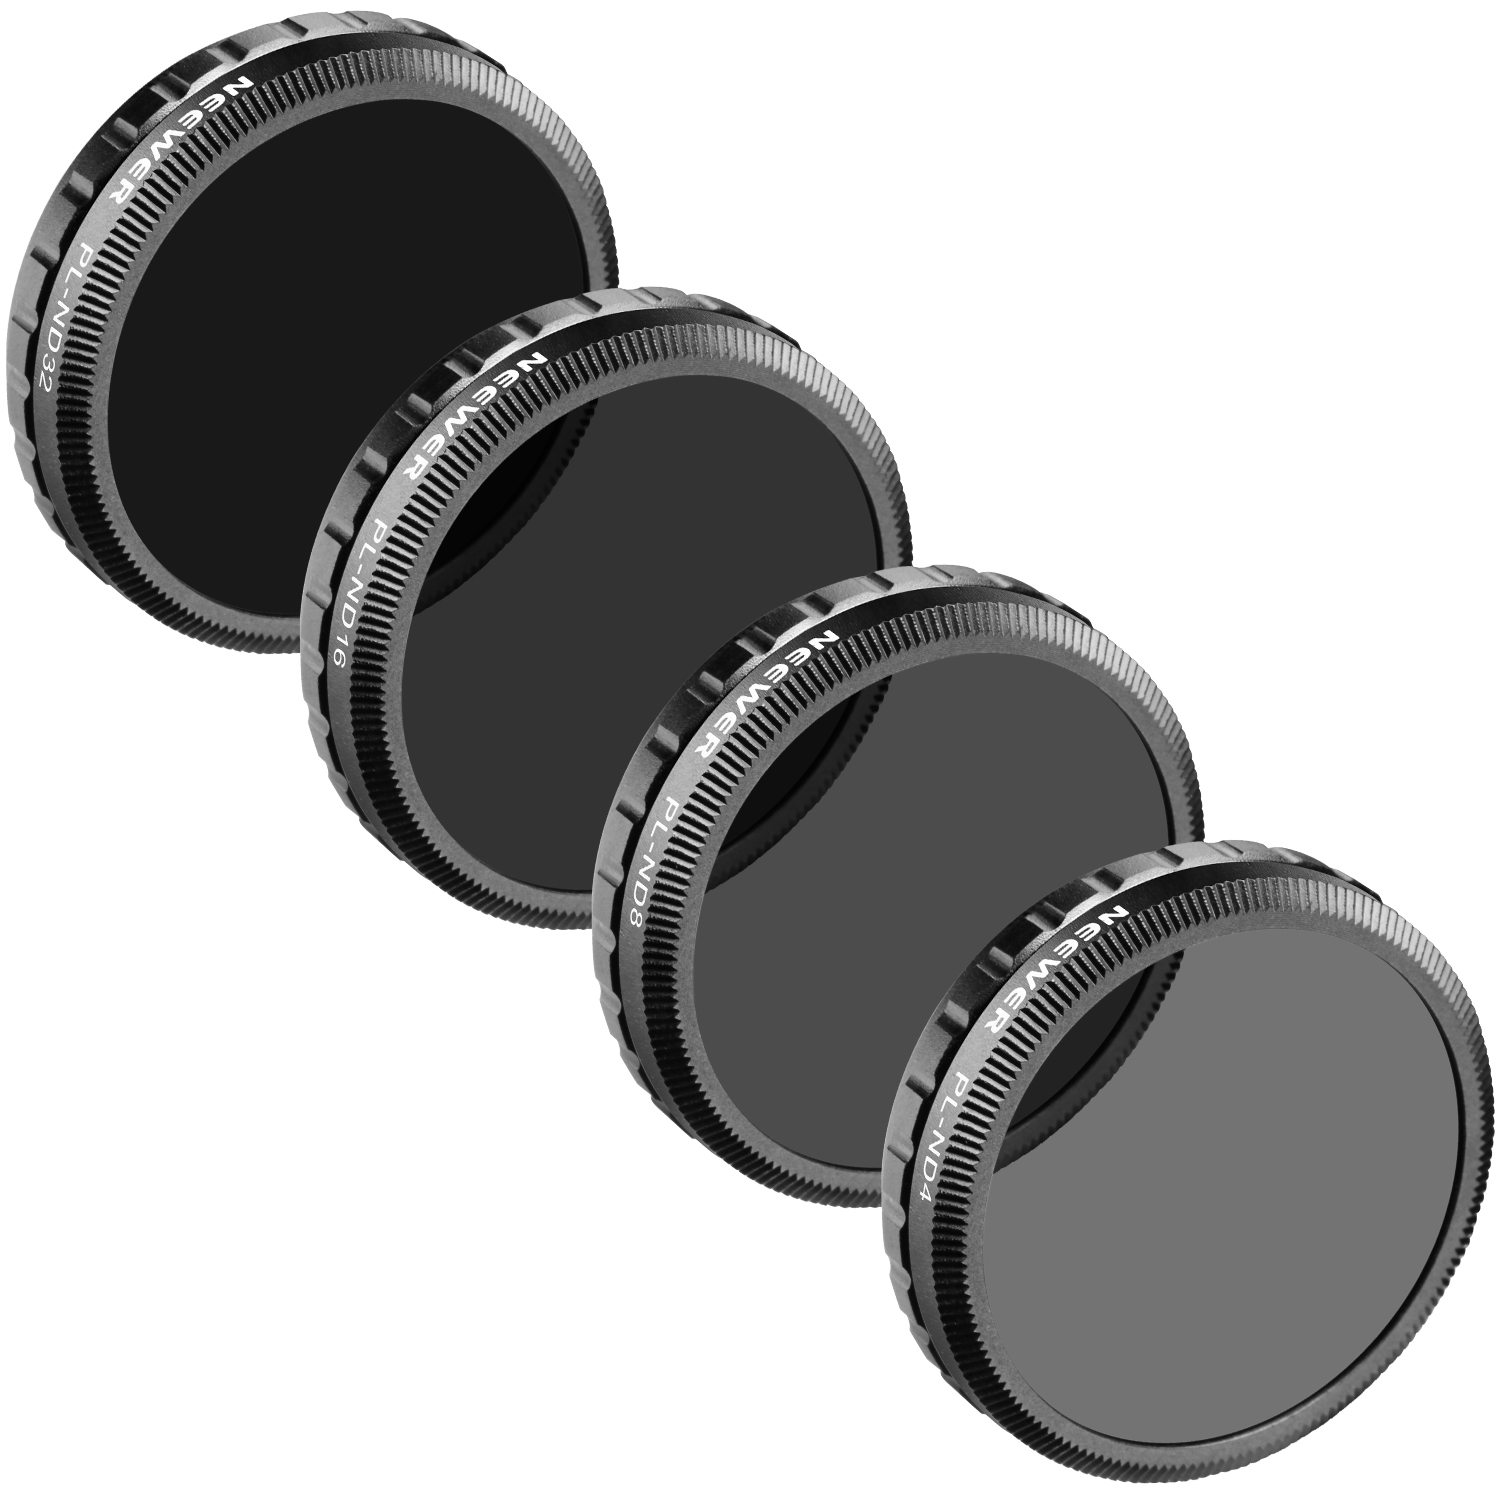 3 Professional 3 Advanced Neewer  ND4 ND8 PL Filter Set  for DJI Phantom 4